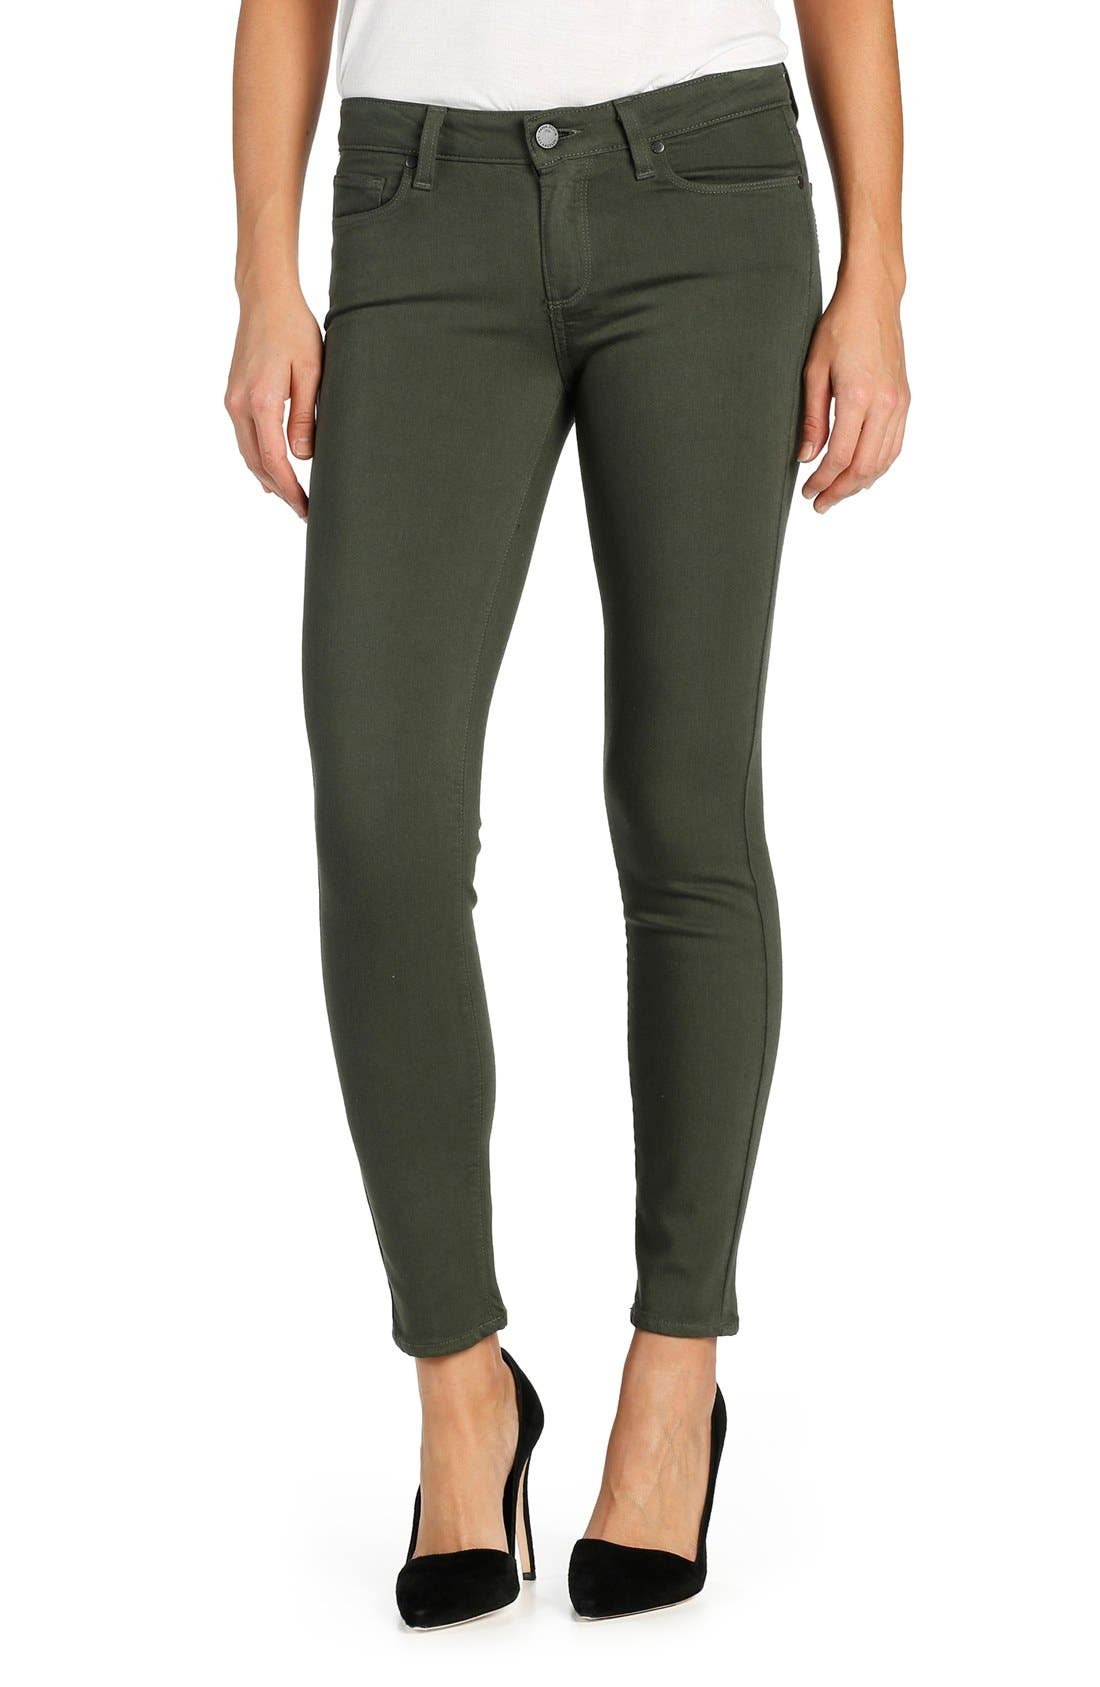 Alternate Image 1 Selected - PAIGE Transcend Verdugo Ankle Ultra Skinny Jeans